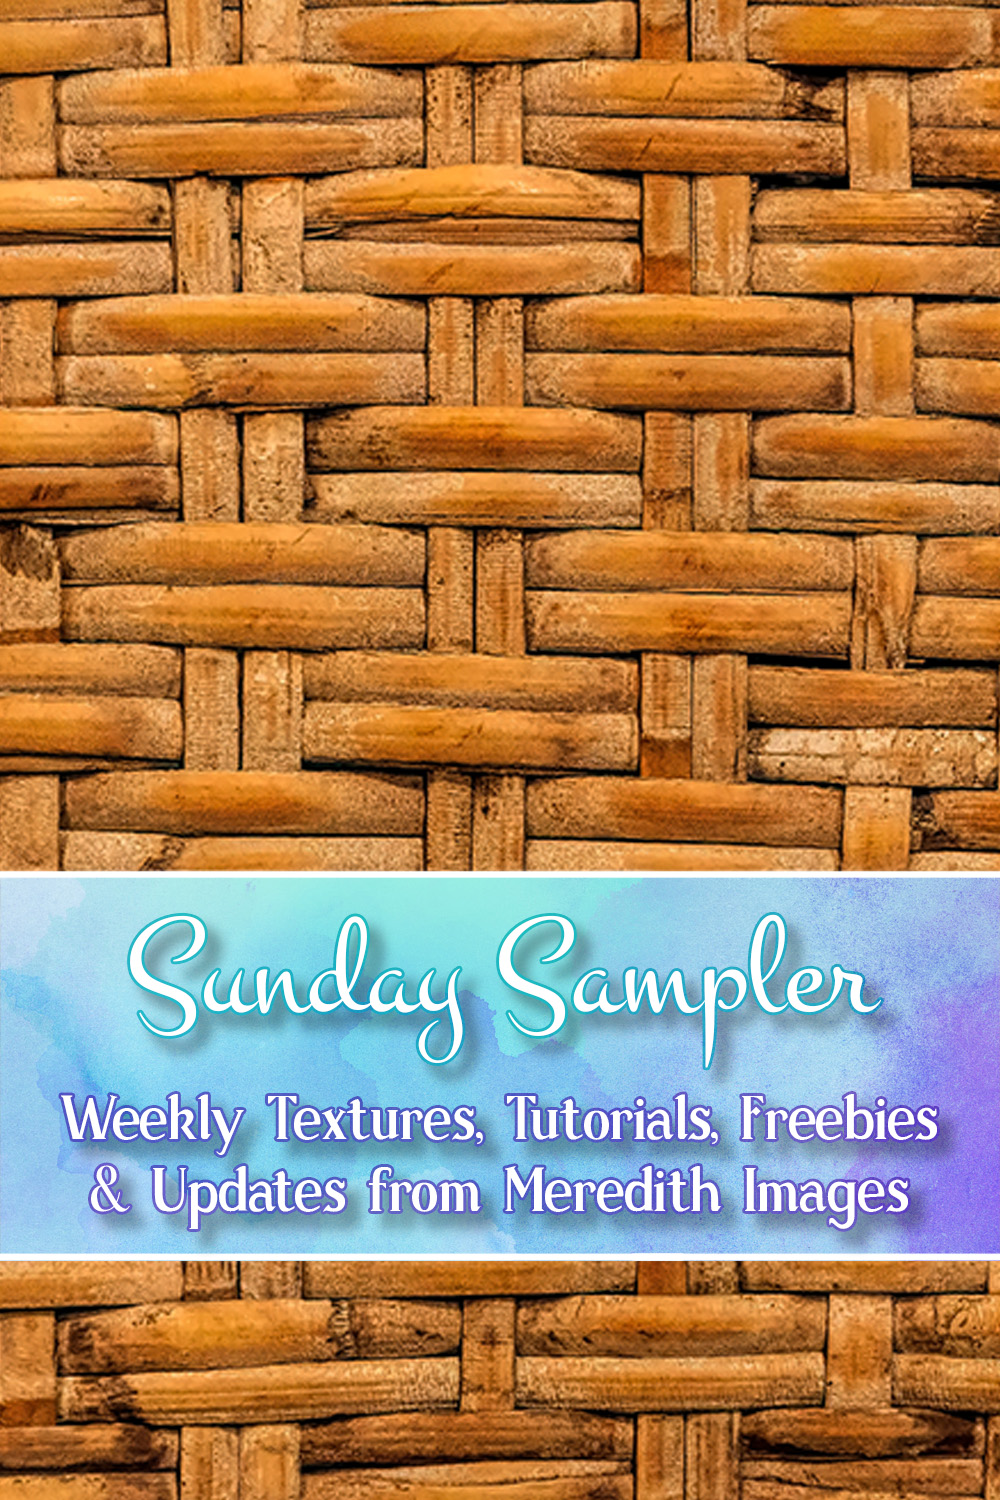 July 14 – Sunday Sampler